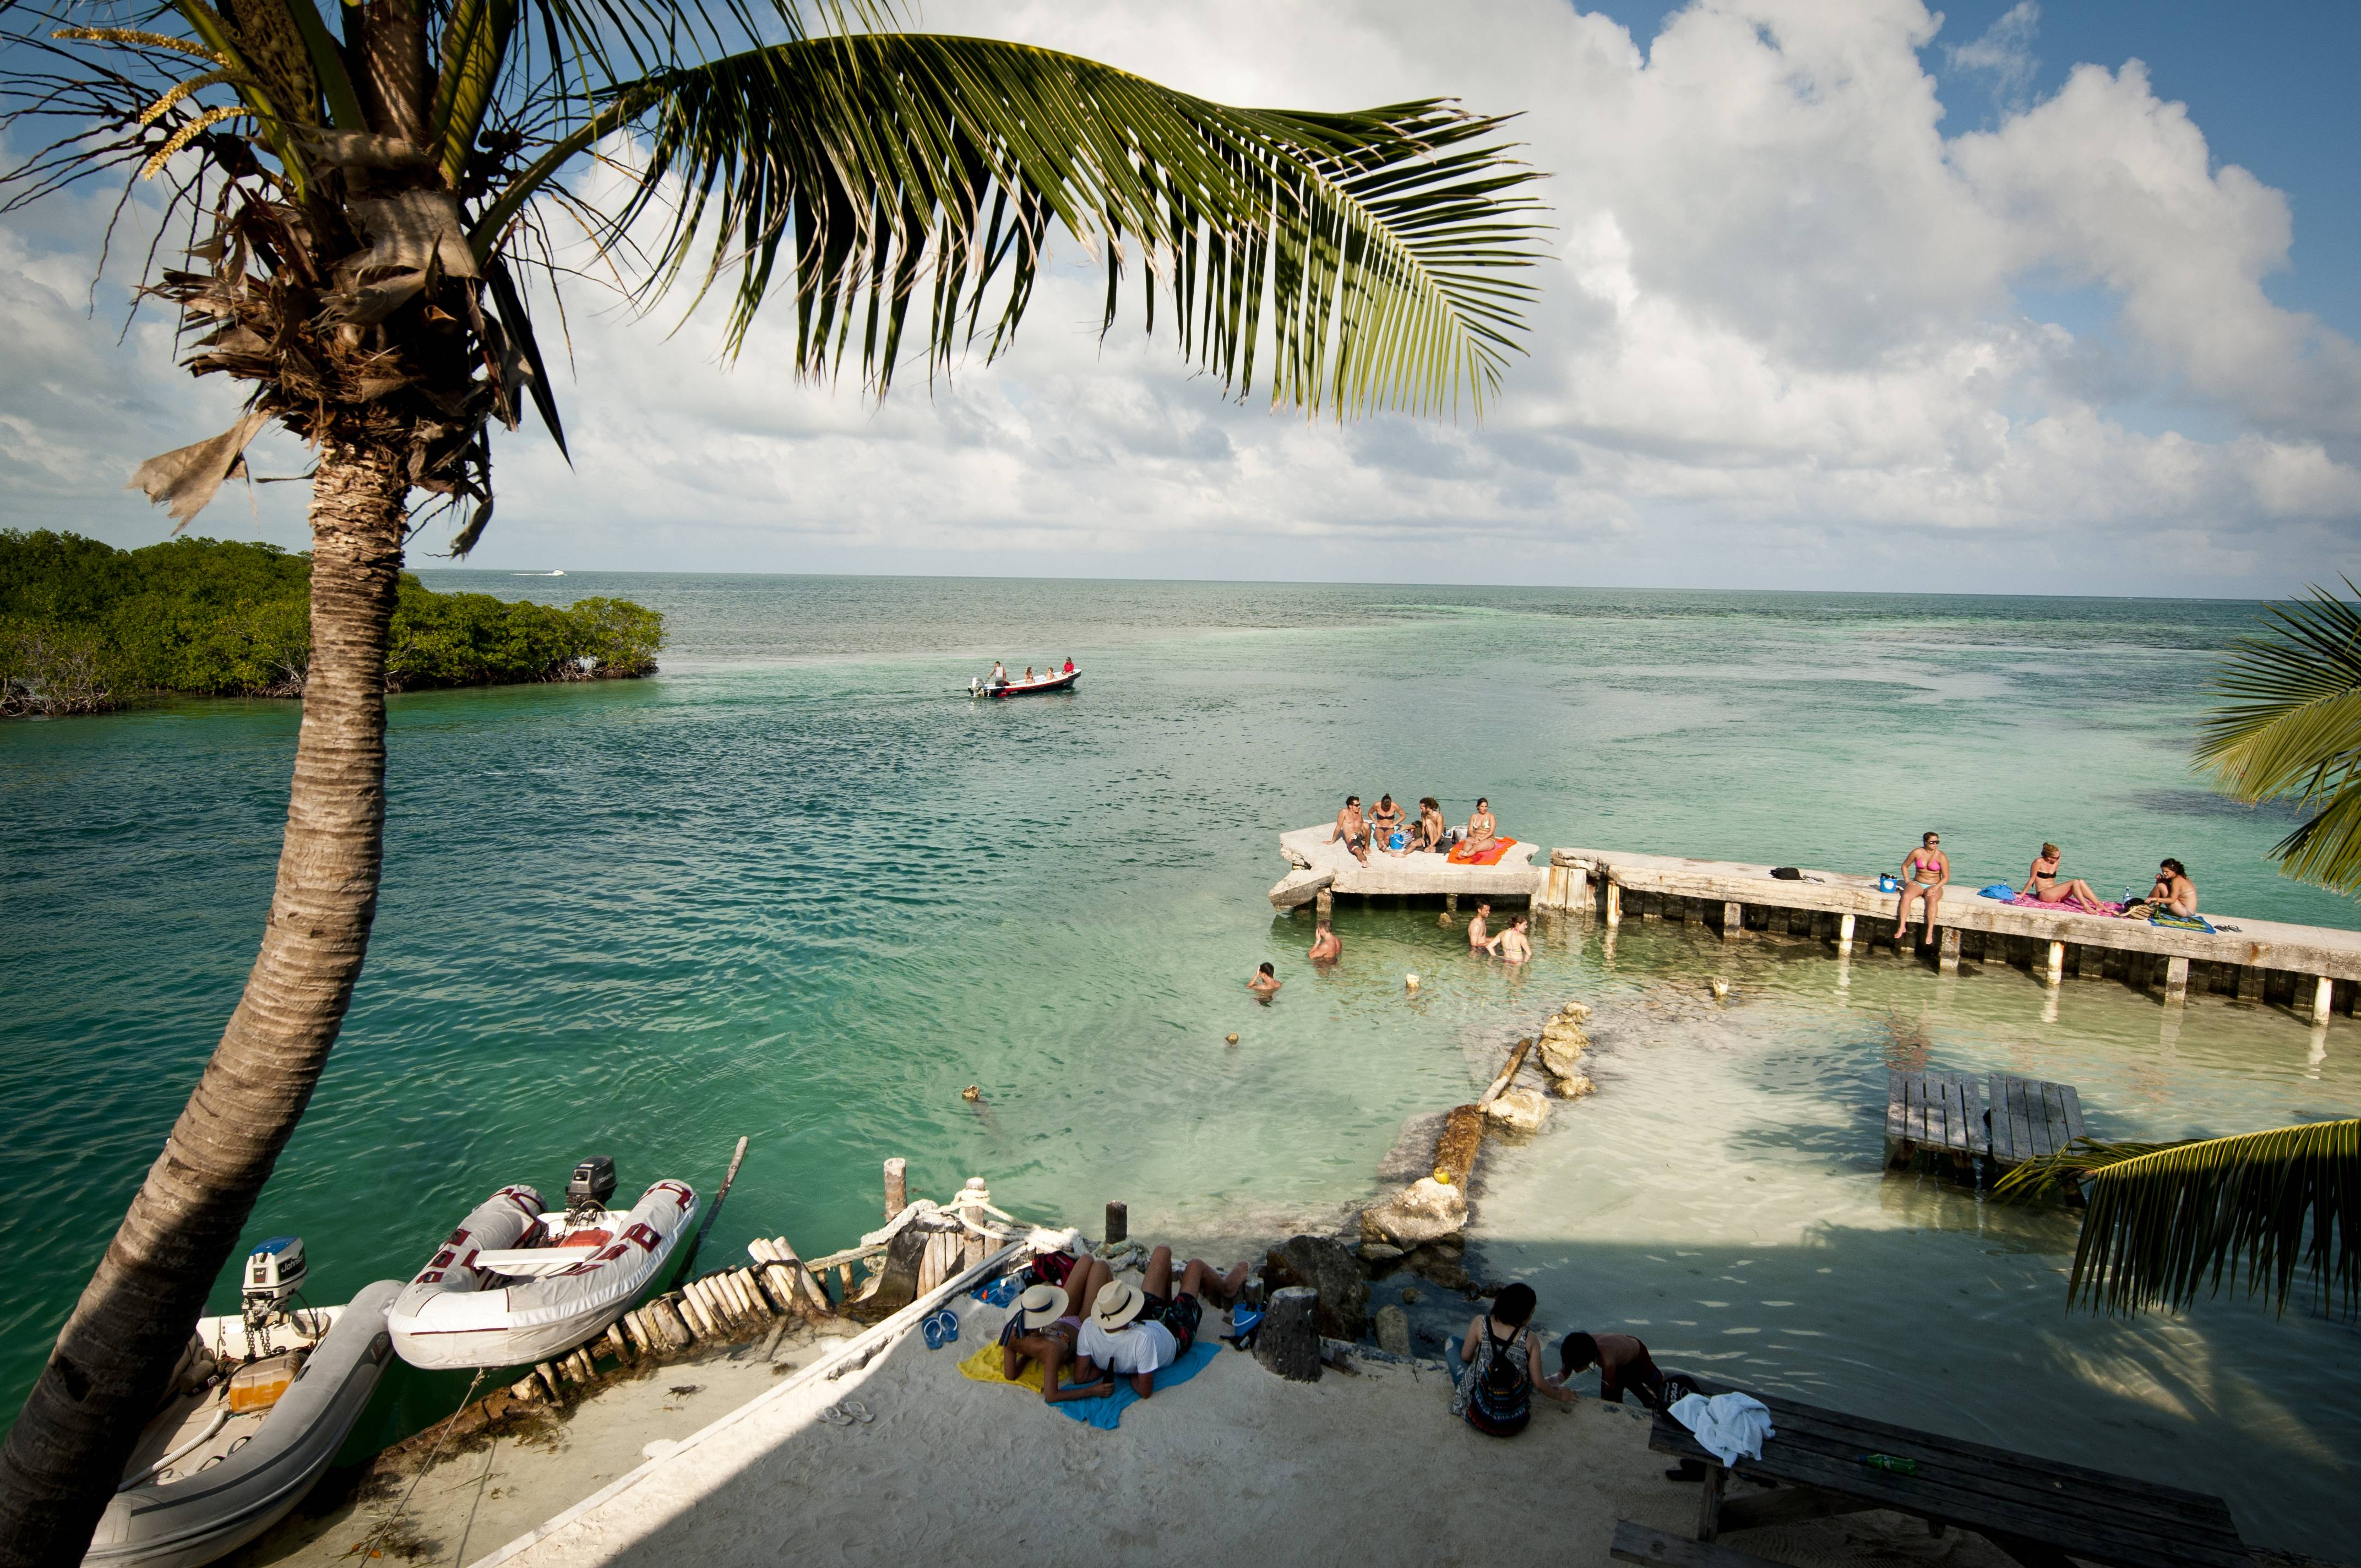 Vacationers relax at Caye Caulker, Belize. The beach town is a laid-back, low-cost base for tourists looking to explore a nearby barrier reef.